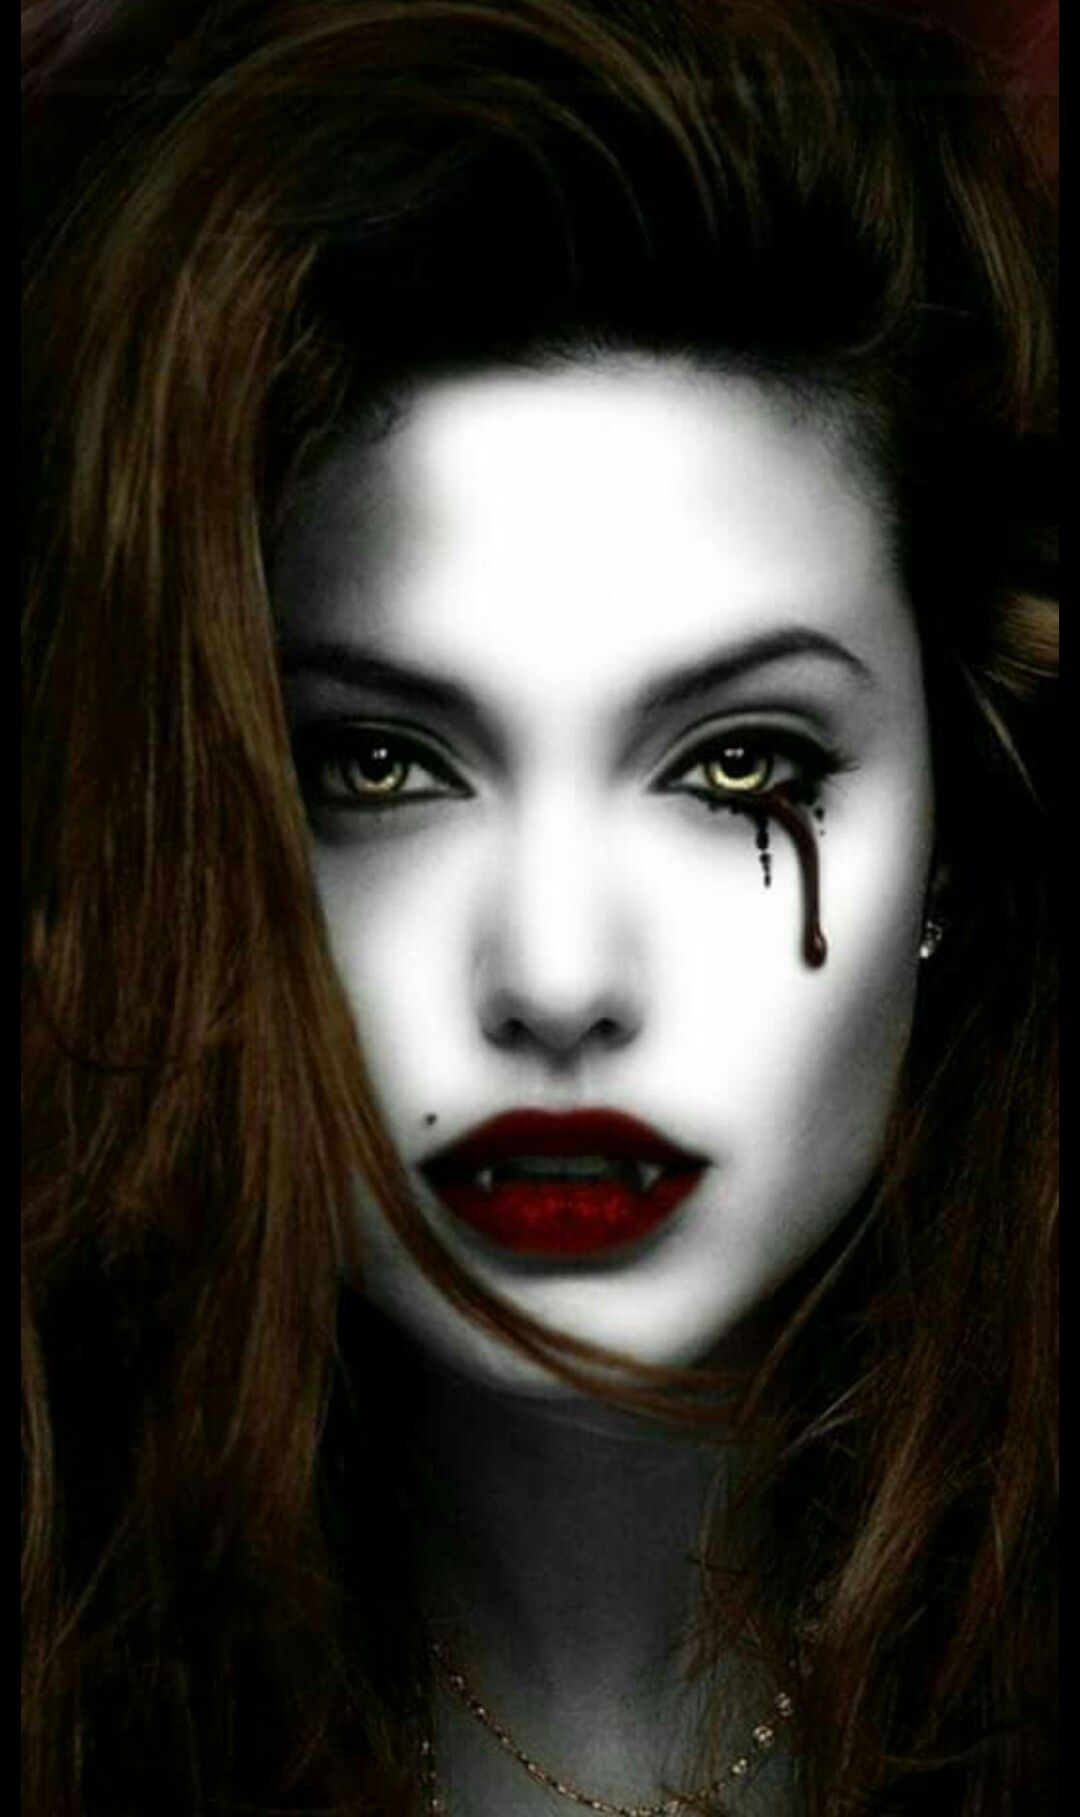 Horror art vampire pics vampire love vampire queen female vampire vampire